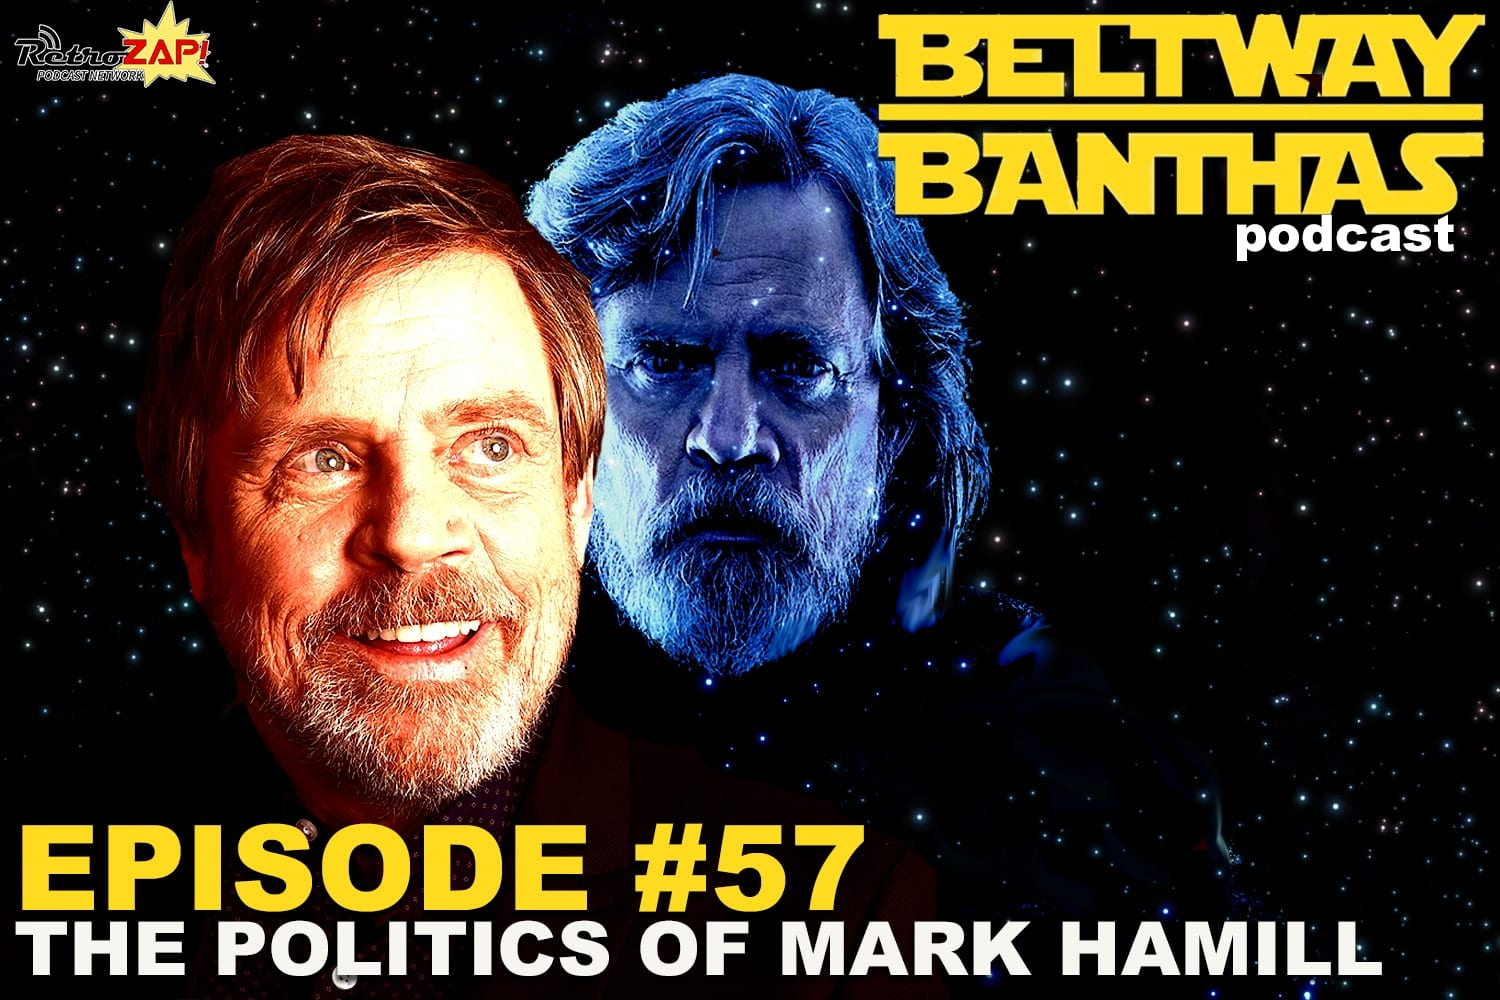 Beltway Banthas #57: The Politics of Mark Hamill